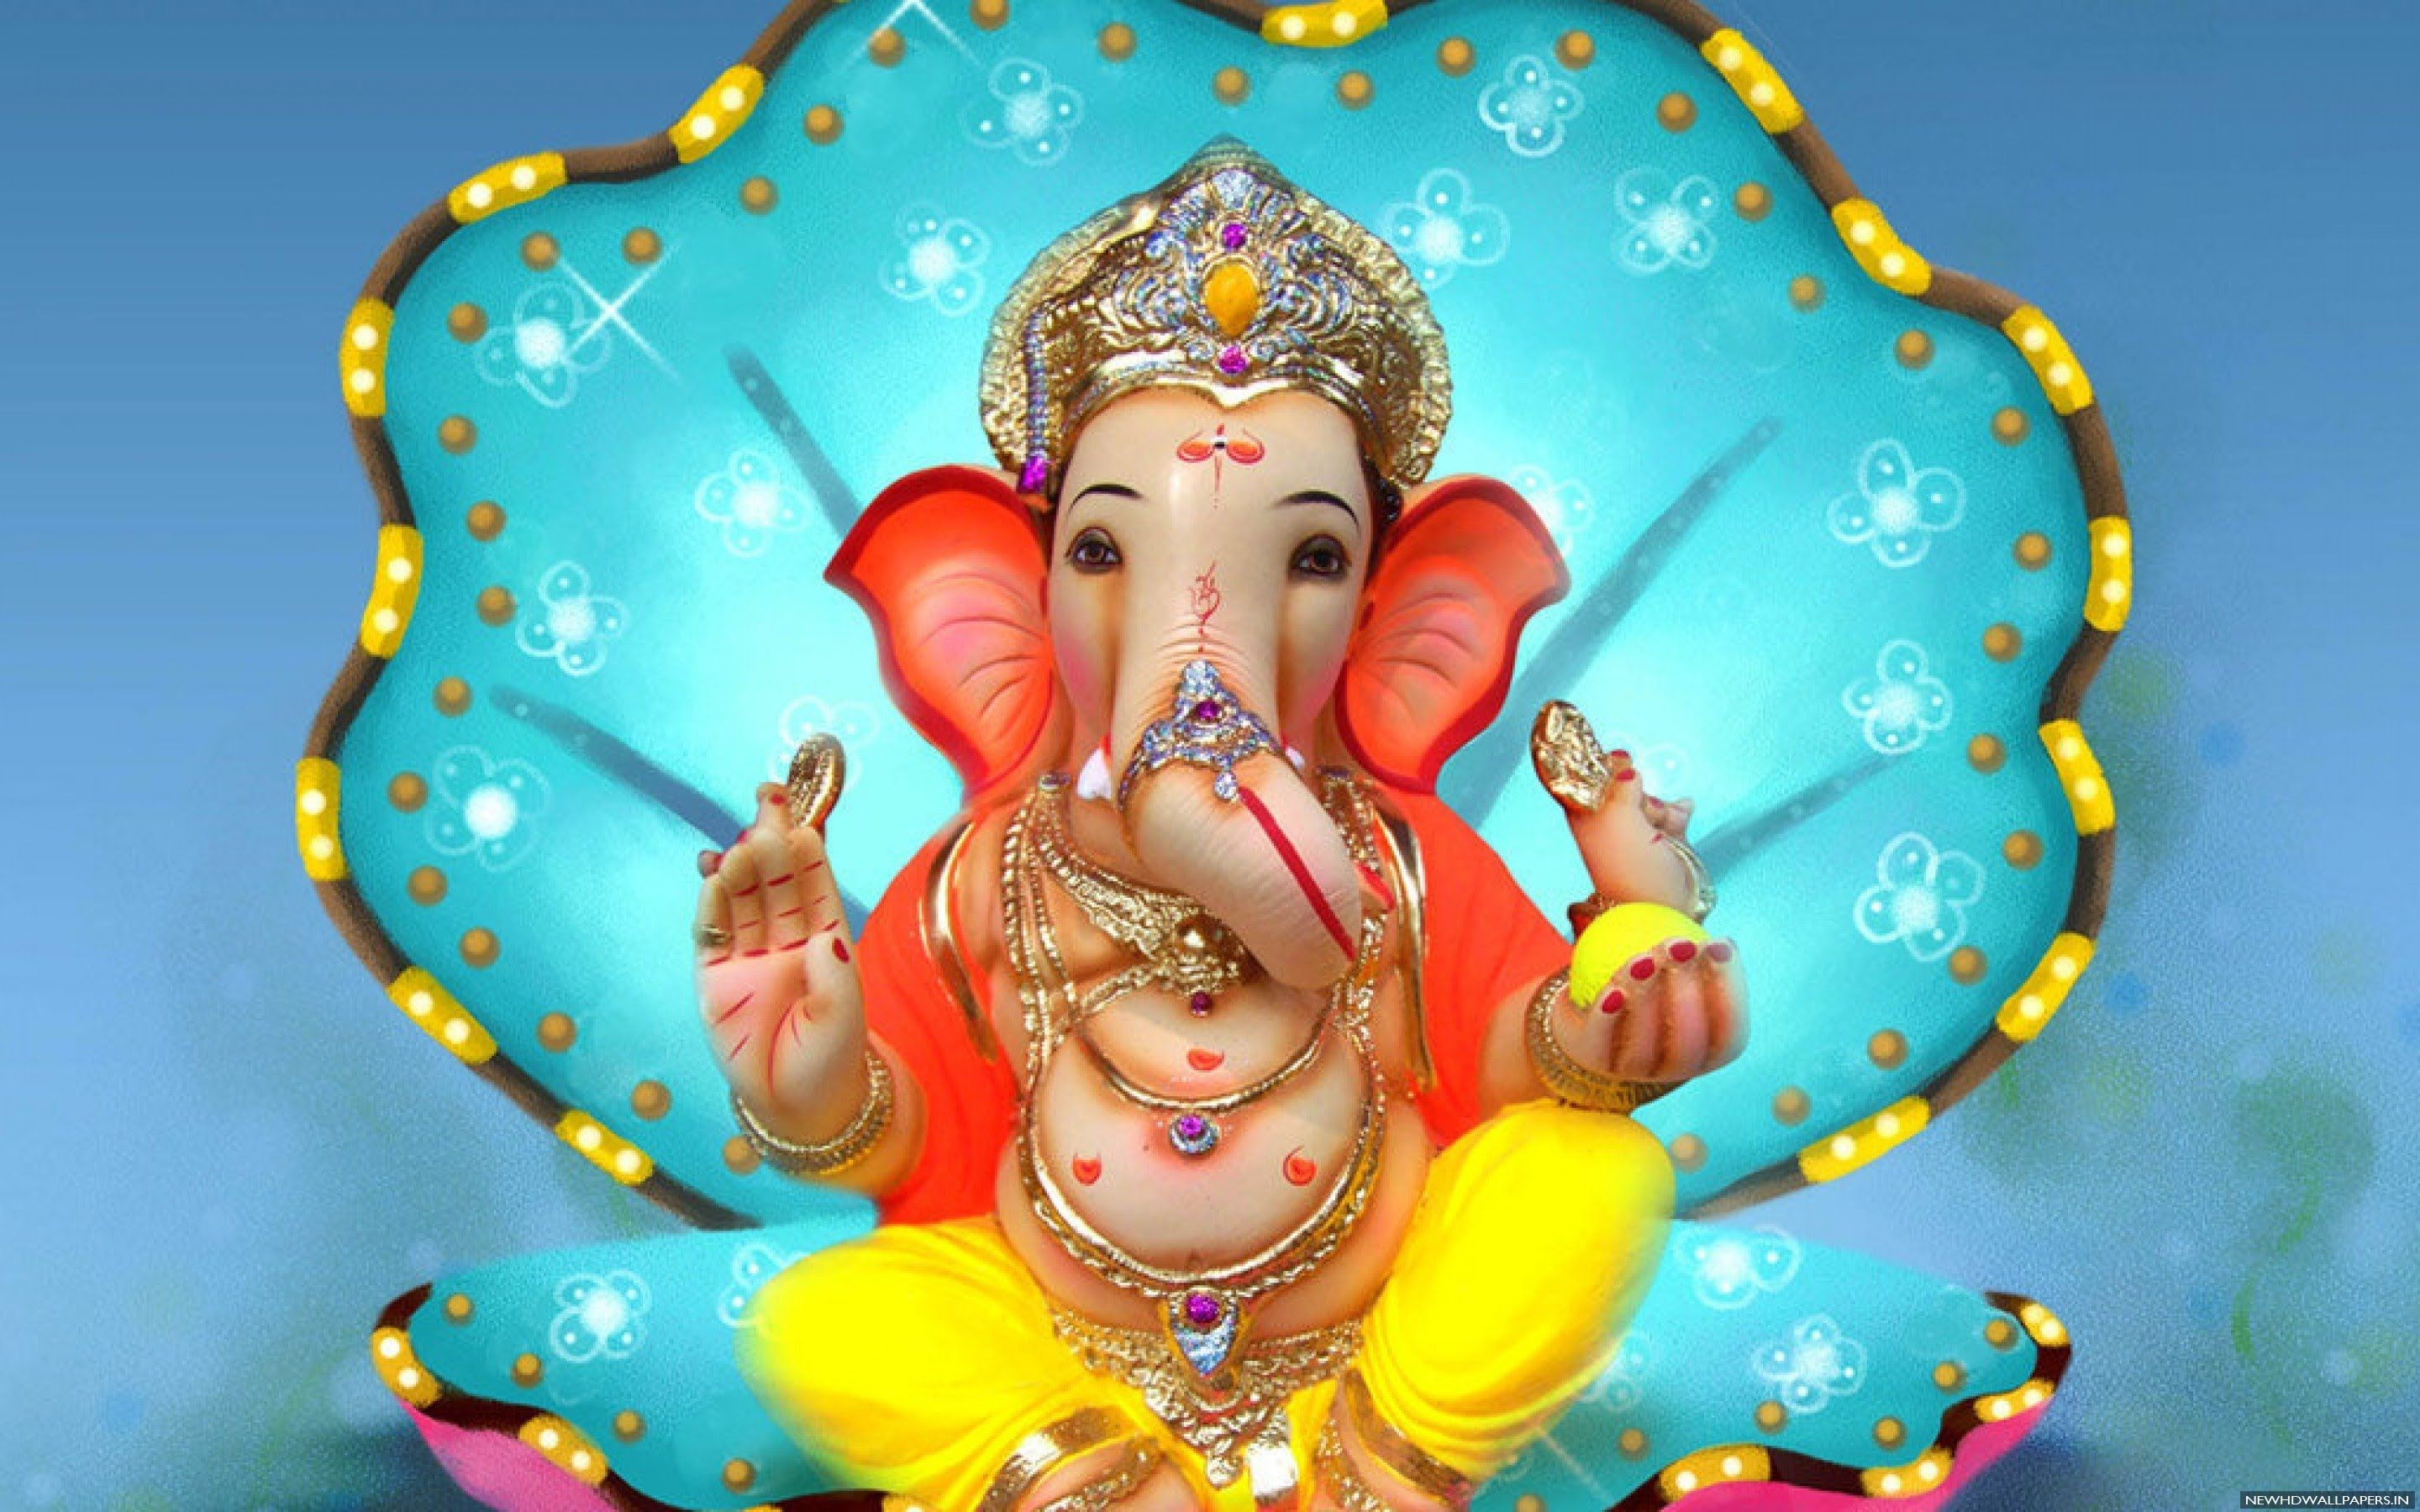 Ganesh images hd wallpaper free download free wallpapers ganesh images hd wallpaper free download thecheapjerseys Choice Image